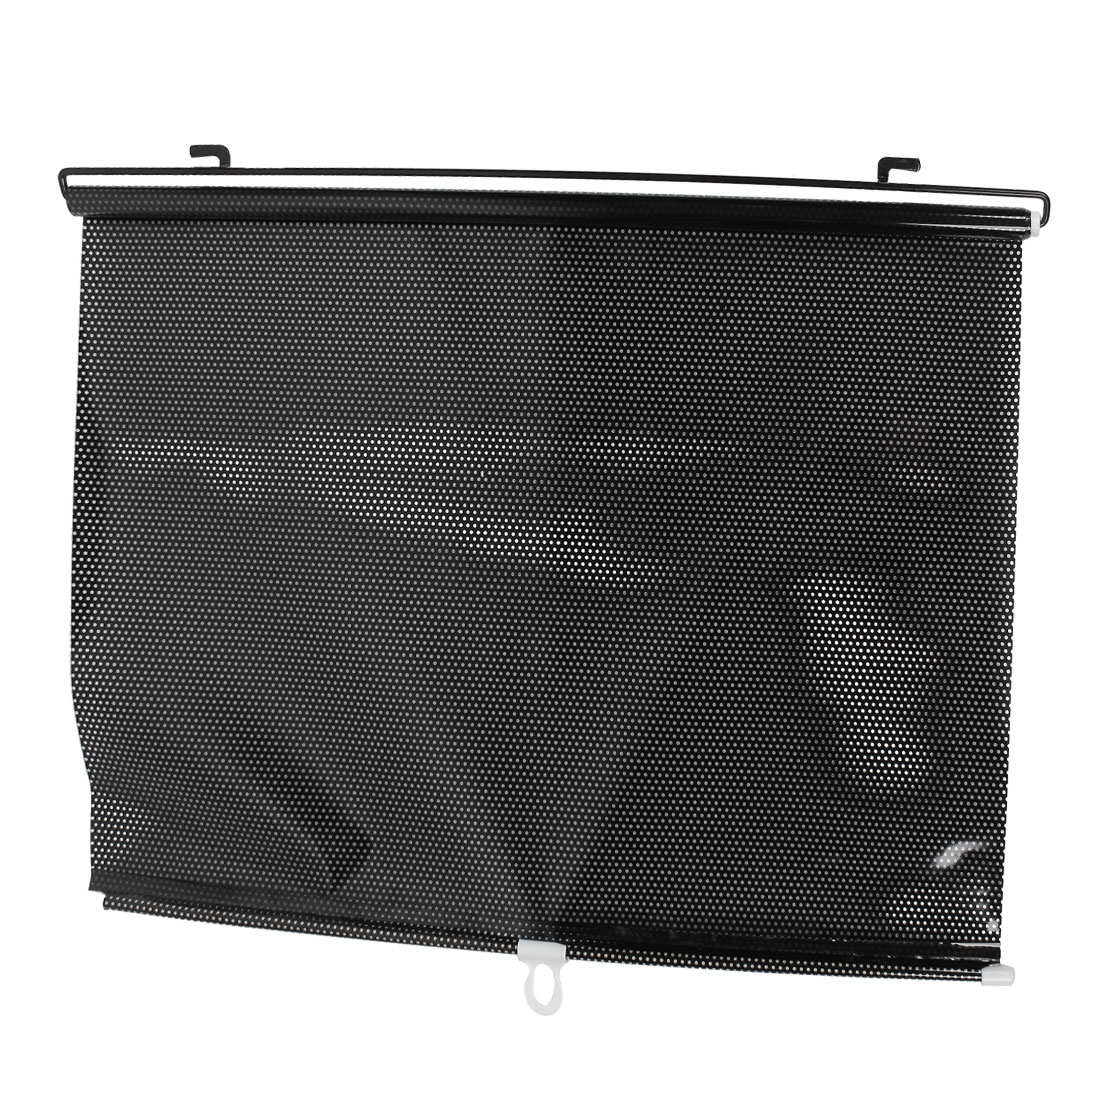 125cm x 58cm Black Clear Roll up Reflective Sun Shade for Car Window